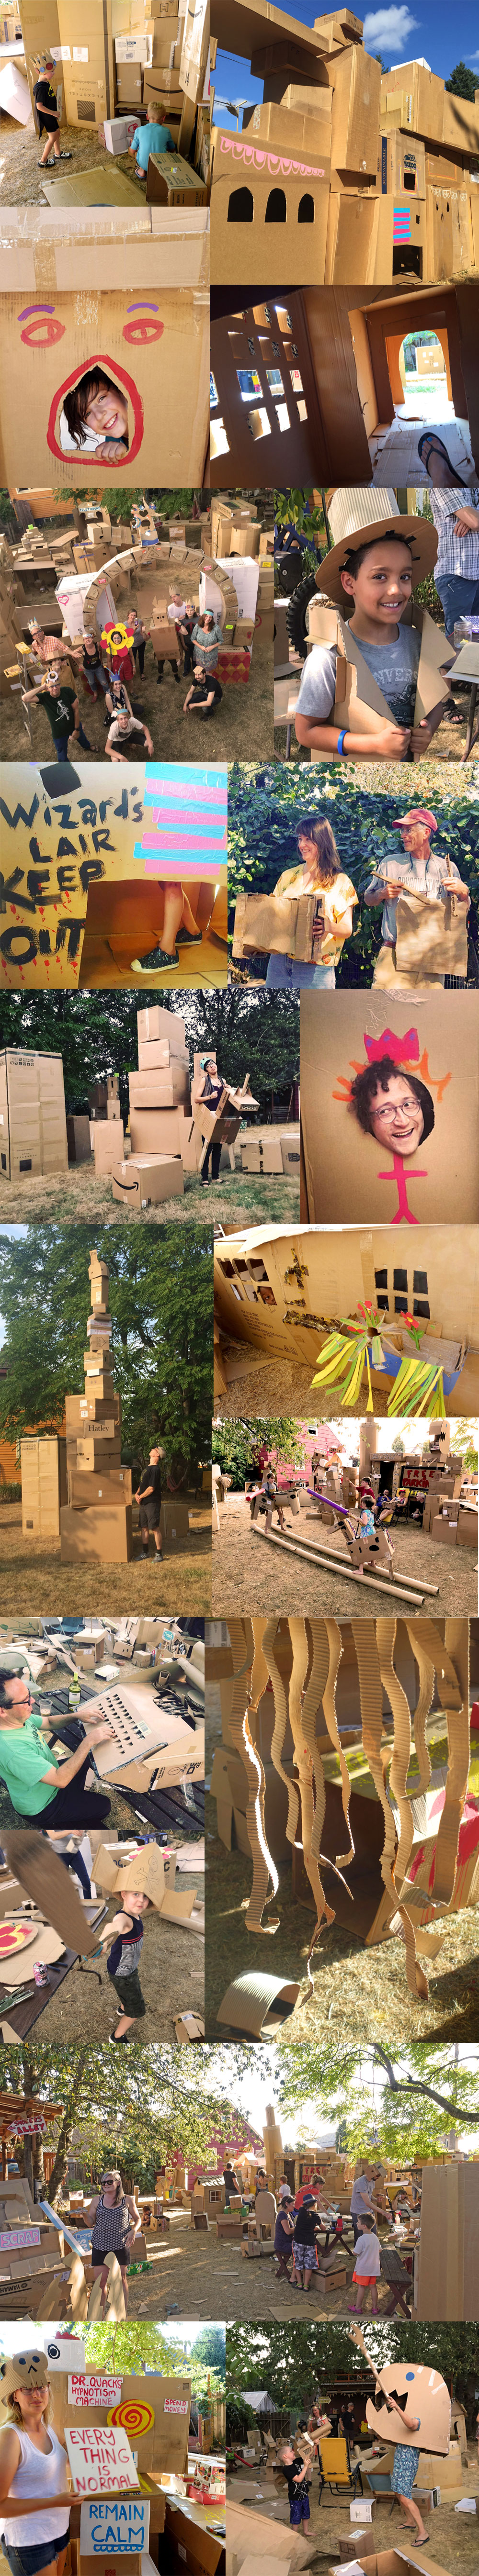 cardboardfest-collage_01.jpg